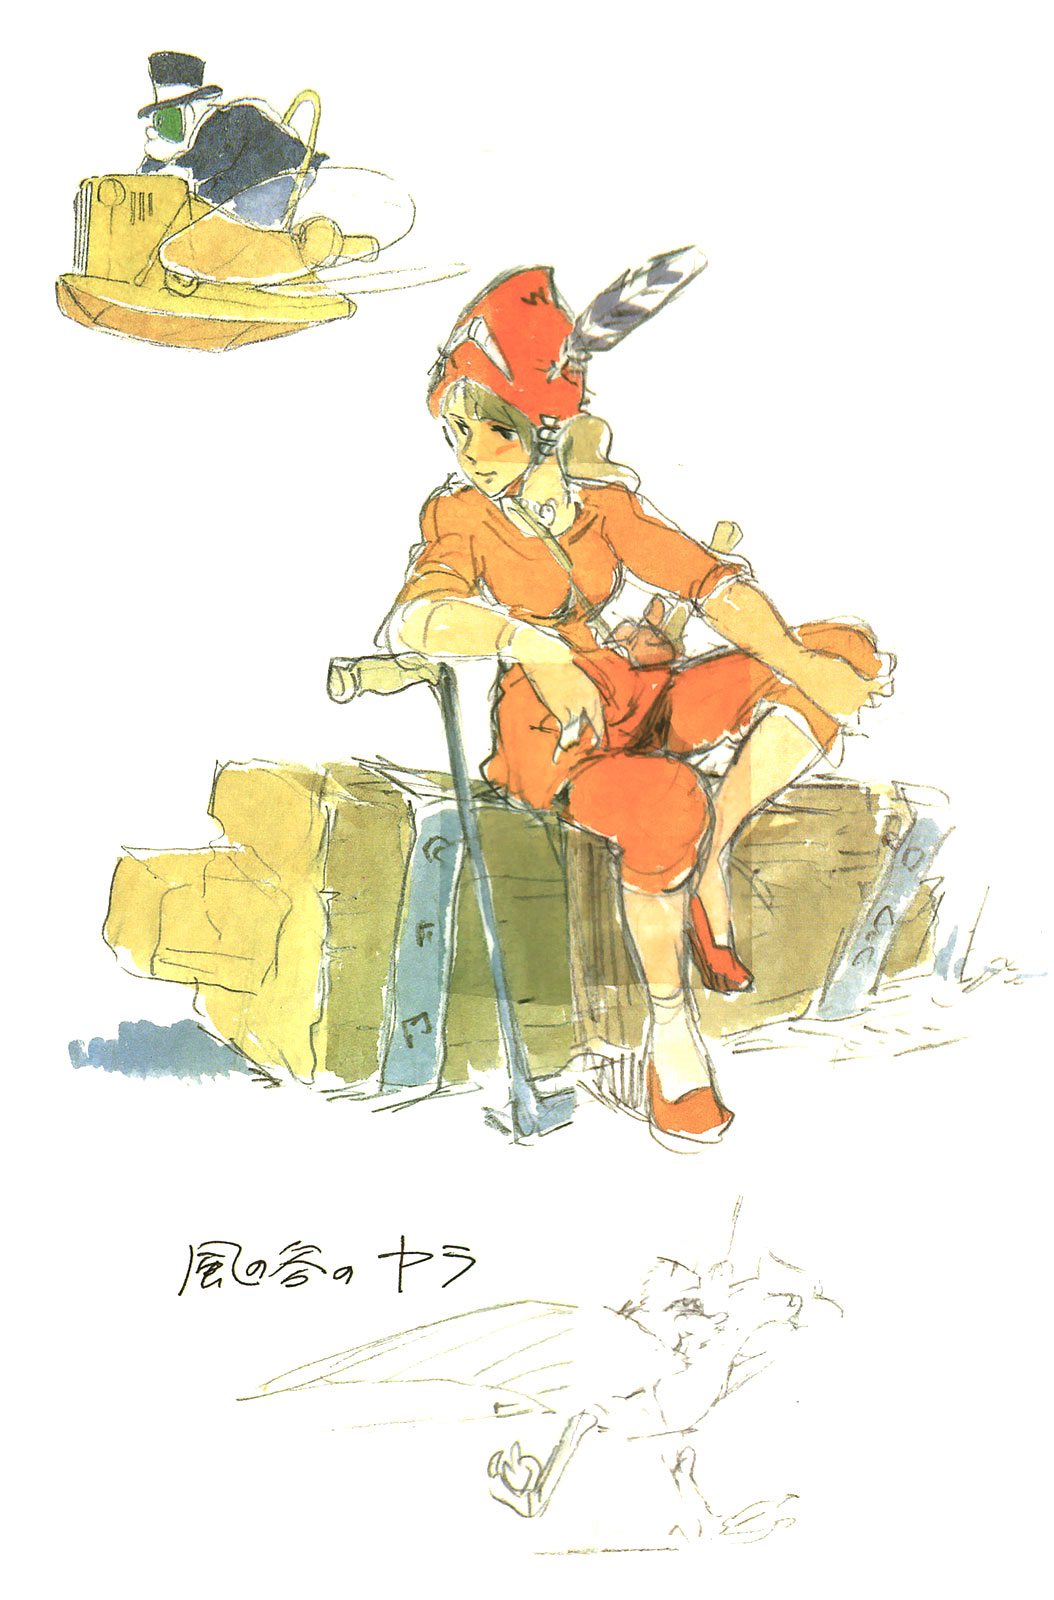 nausicaa_of_the_valley_of_the_wind_concept_art_character_03d.jpg